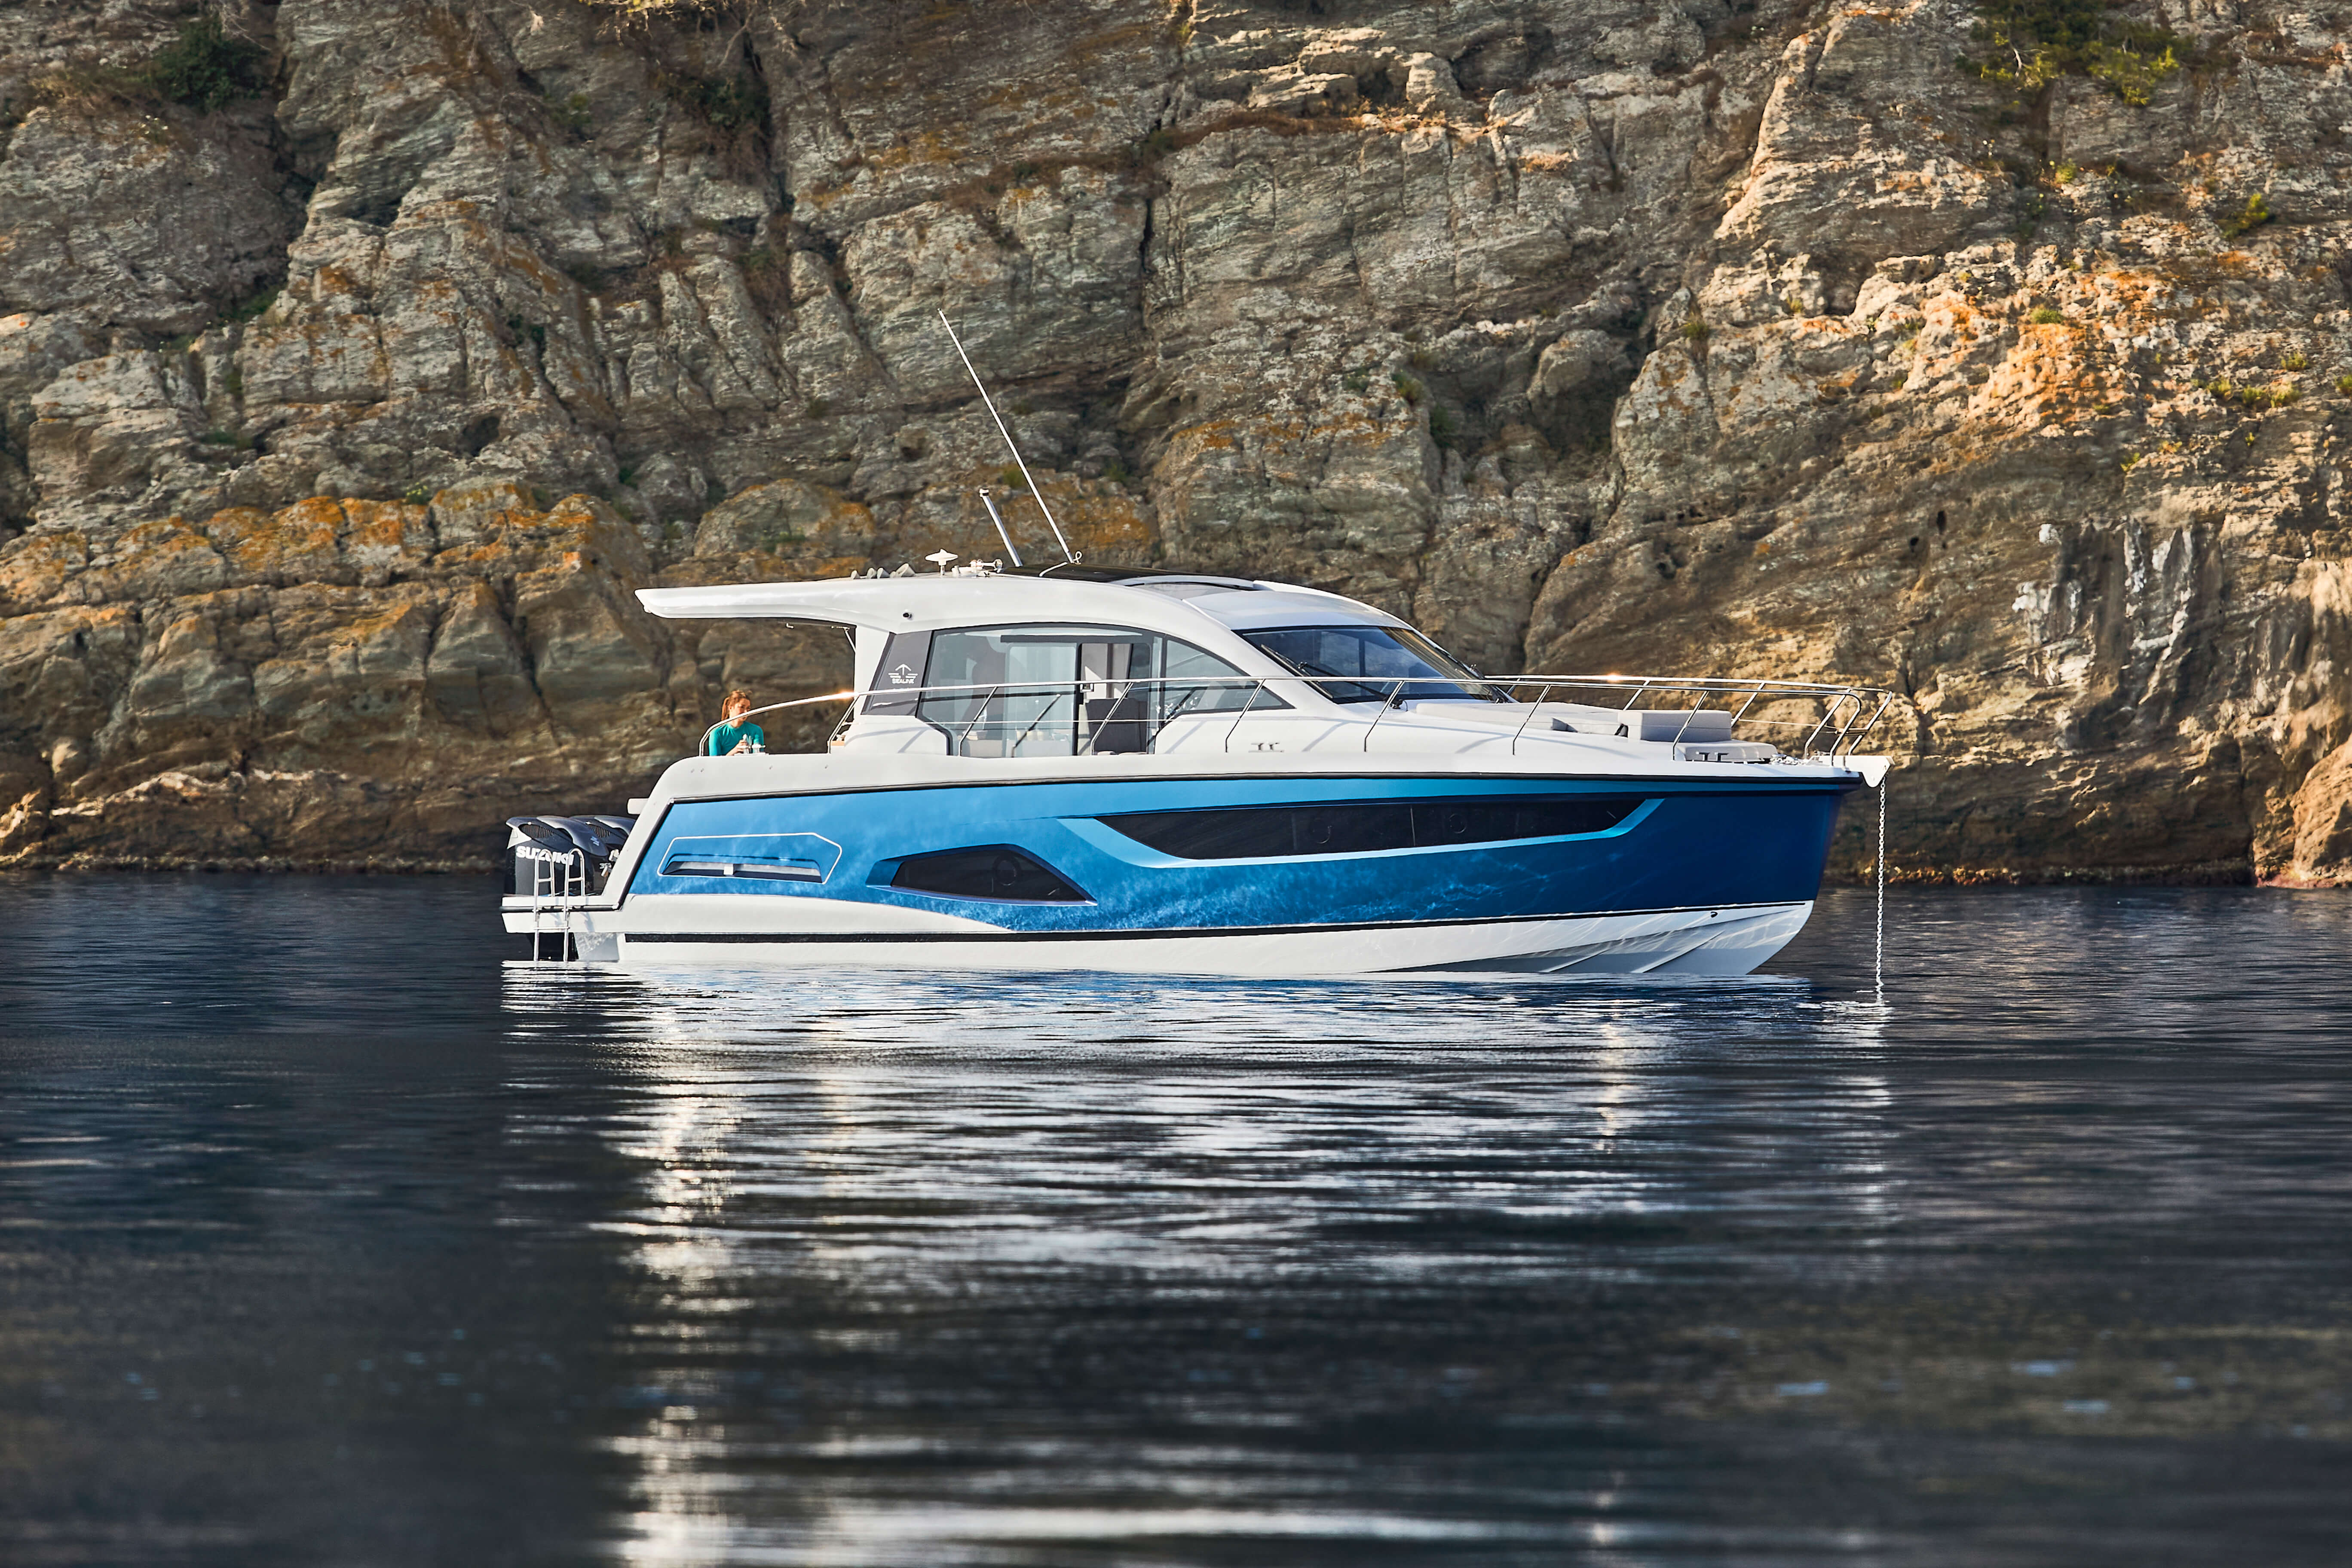 Sealine C390v exterior | Every curve, line and surface is designed to create the most intense motor yacht experience. | Sealine